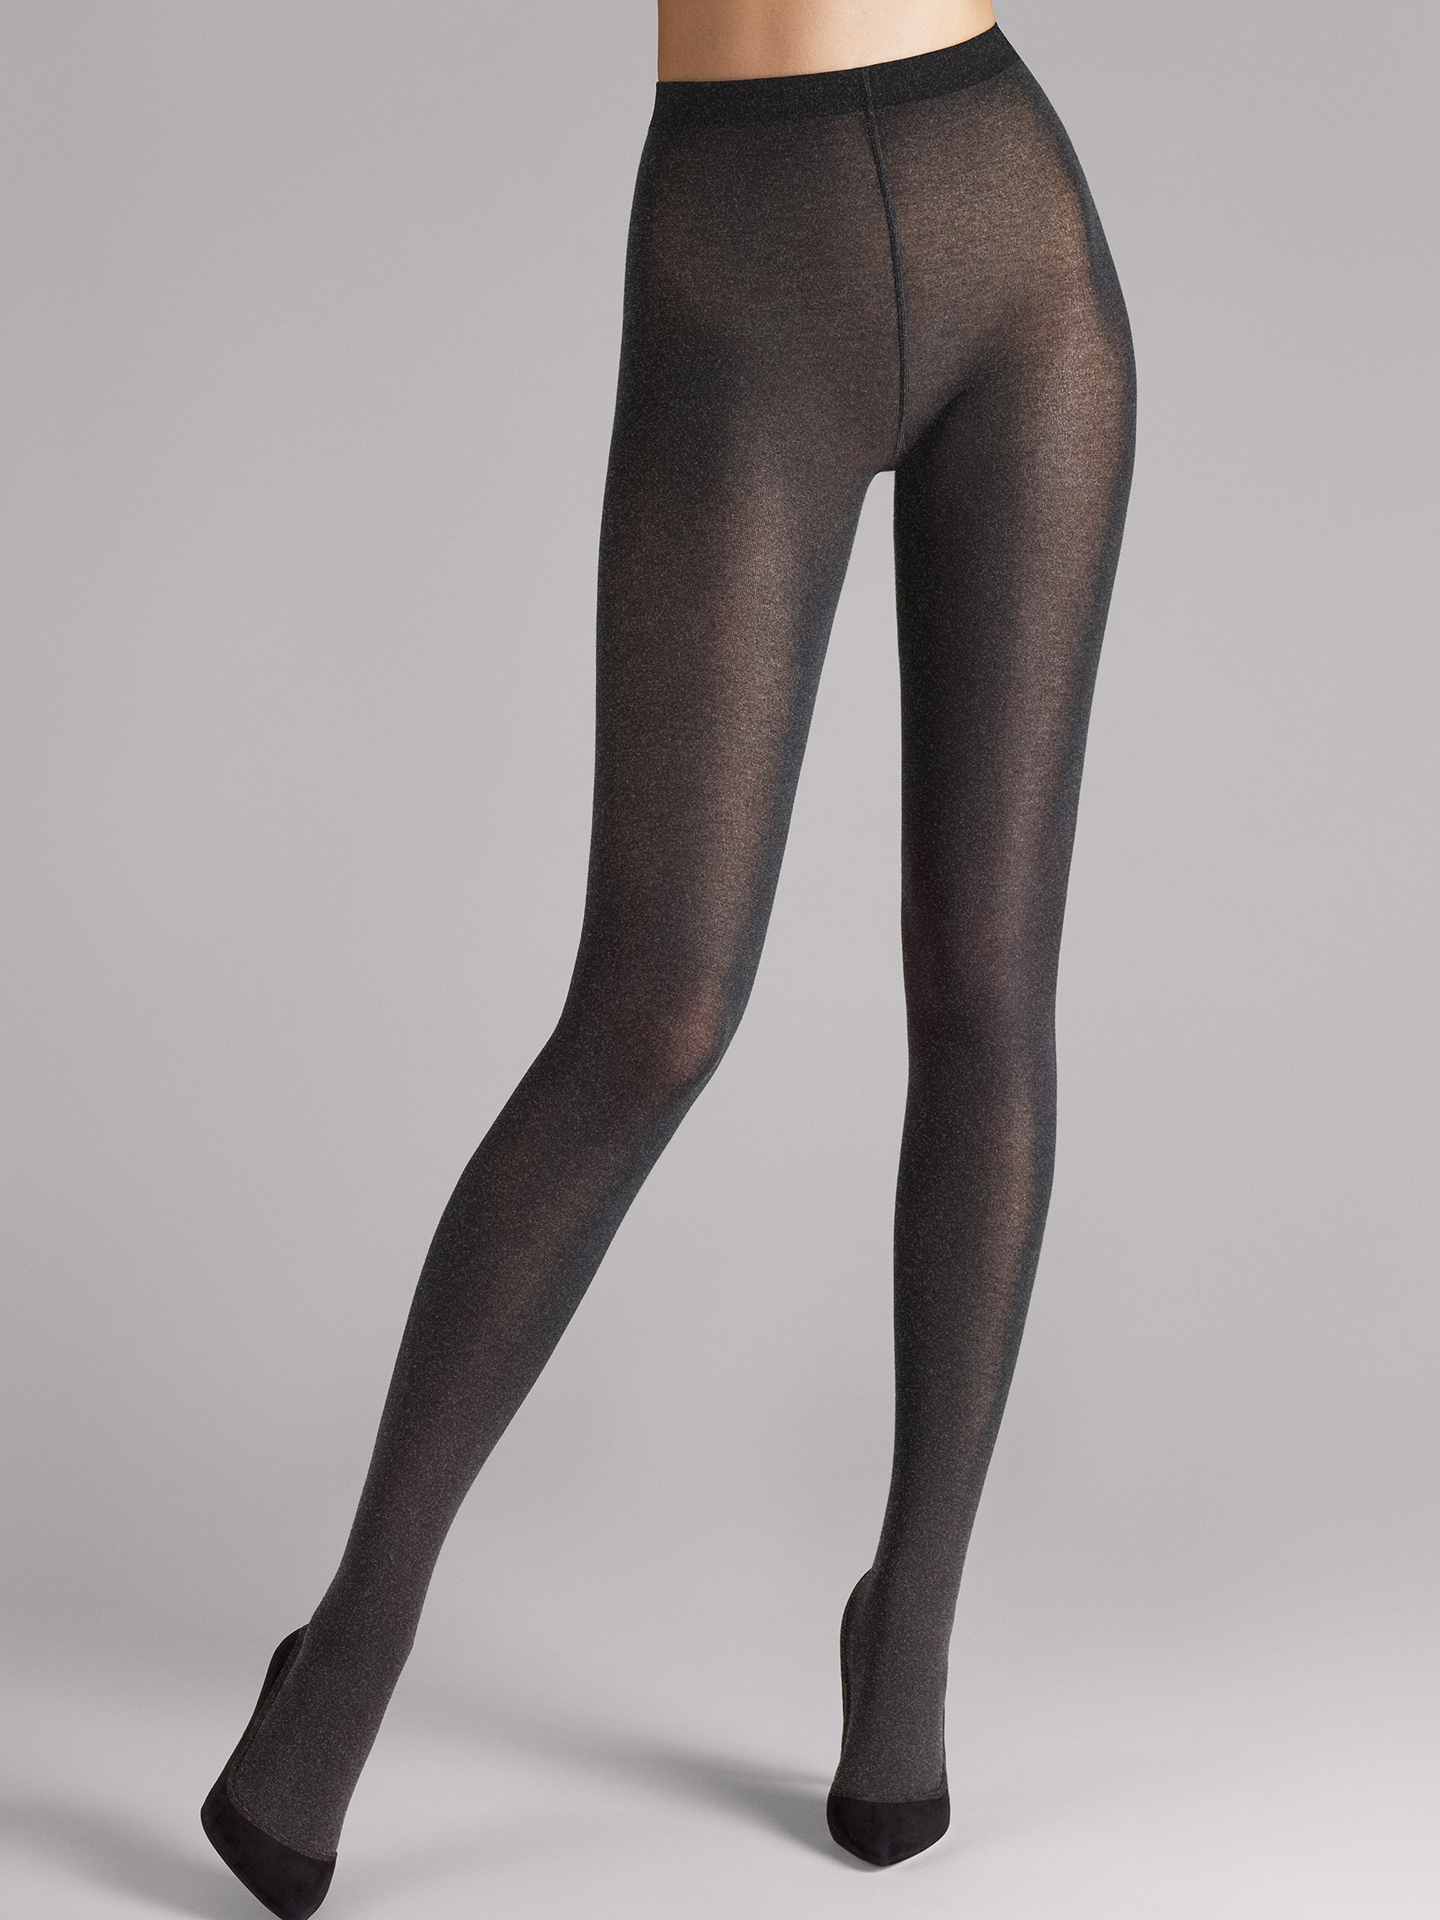 Cotton Velvet Tights - 8026 - M